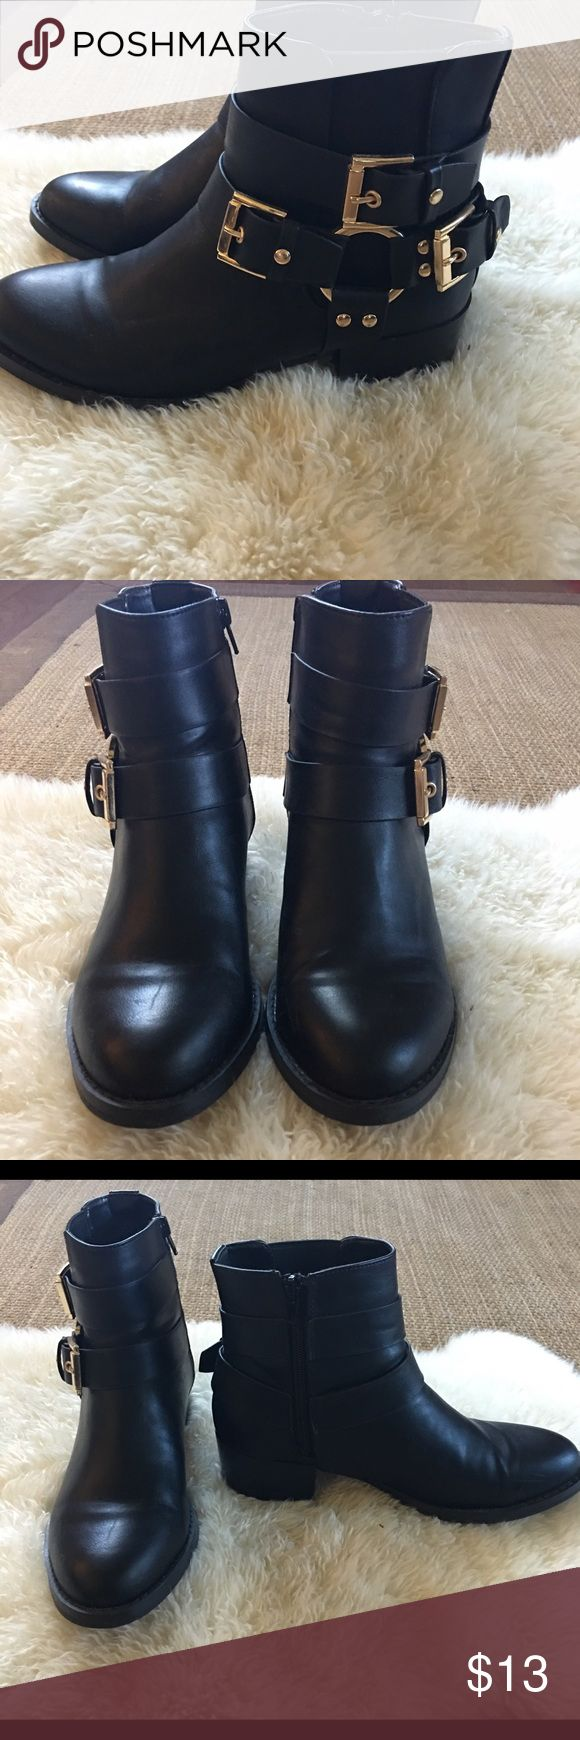 Forever 21 Black Moto Boots With Gold Hardware Forever 21 Black Moto Boots With Gold Hardware And Zipper Closure. Great Condition. Worn A Few Times. Forever 21 Shoes Combat & Moto Boots